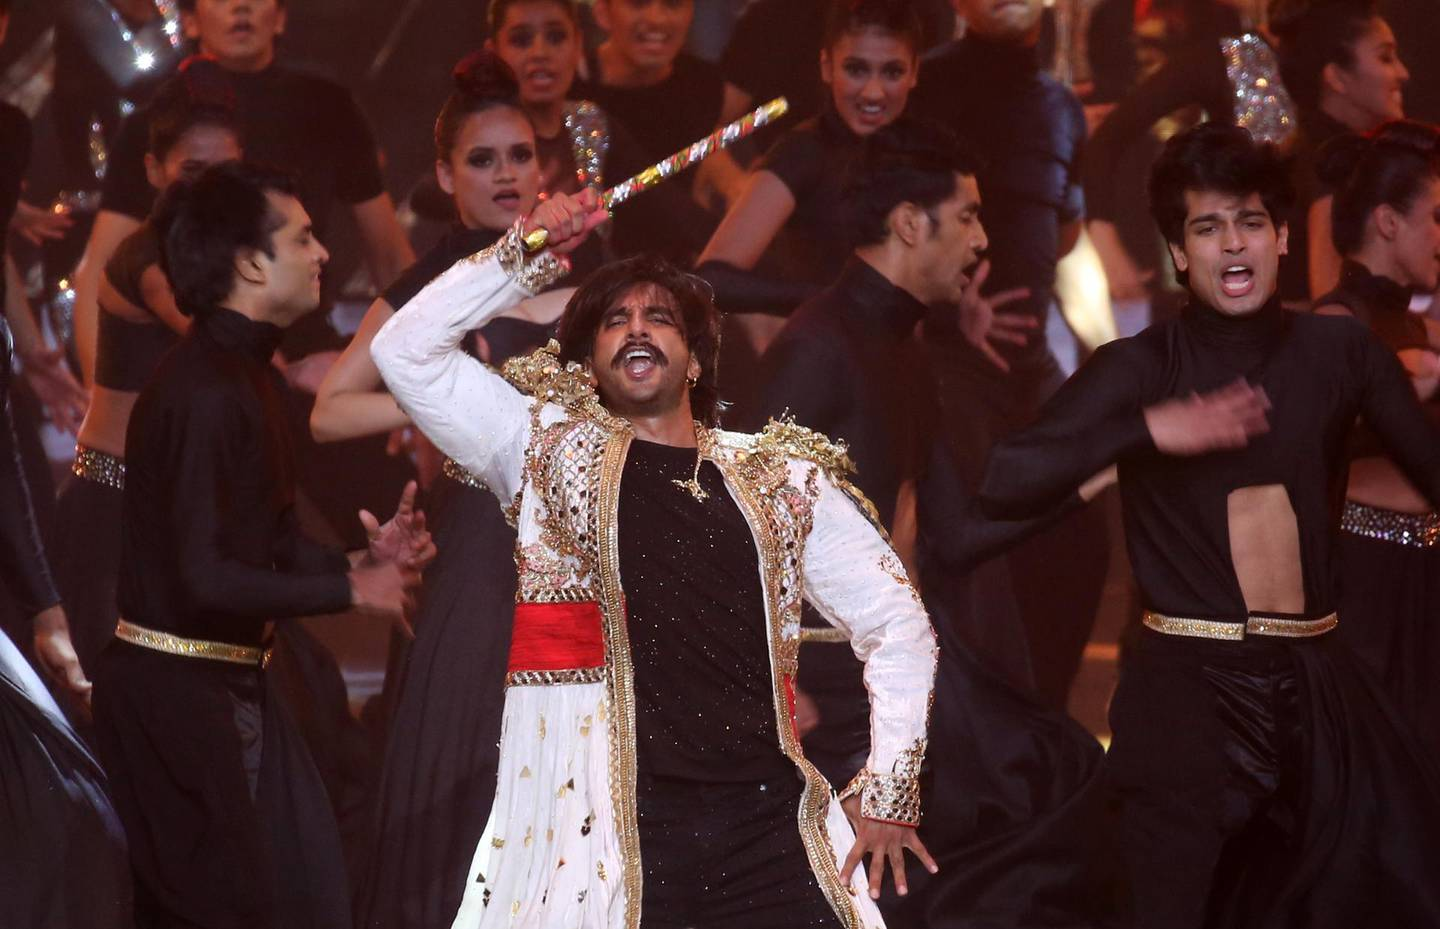 epa07851298 Indian actor Ranveer Singh performs during the 20th International Indian Film Academy (IIFA) awards ceremony in Mumbai, India, 18 September 2019. The IIFA awards are prizes presented by the International Indian Film Academy every year to honour artistic and technical excellence of professionals in Bollywood.  EPA/DIVYAKANT SOLANKI